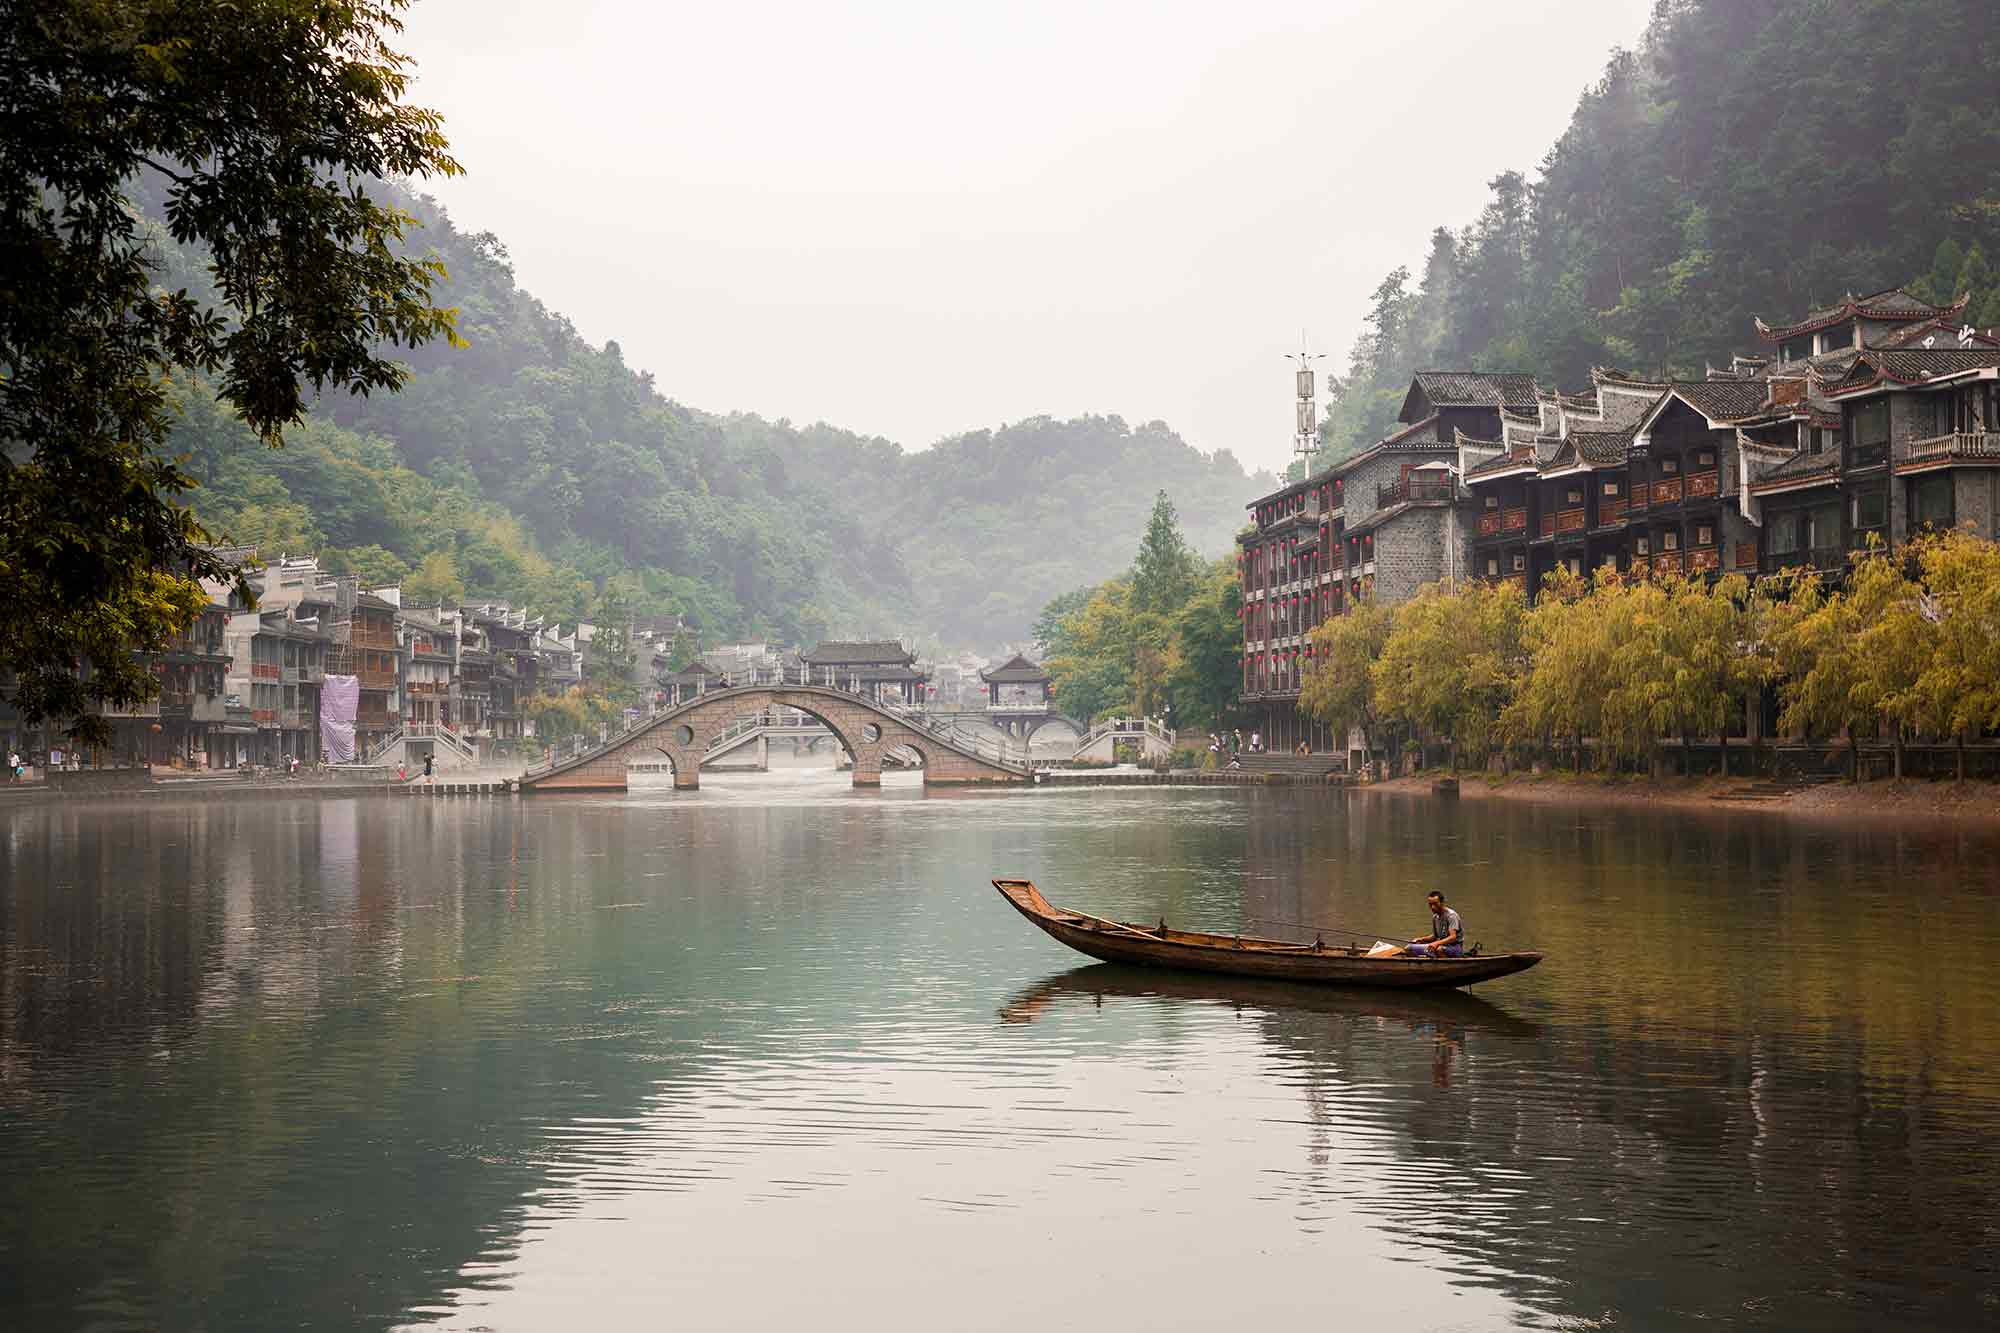 Although Fenghuang is visited by thousands of tourists each day, the calm atmosphere somehow decelerates daily life. © ULLI MAIER & NISA MAIER